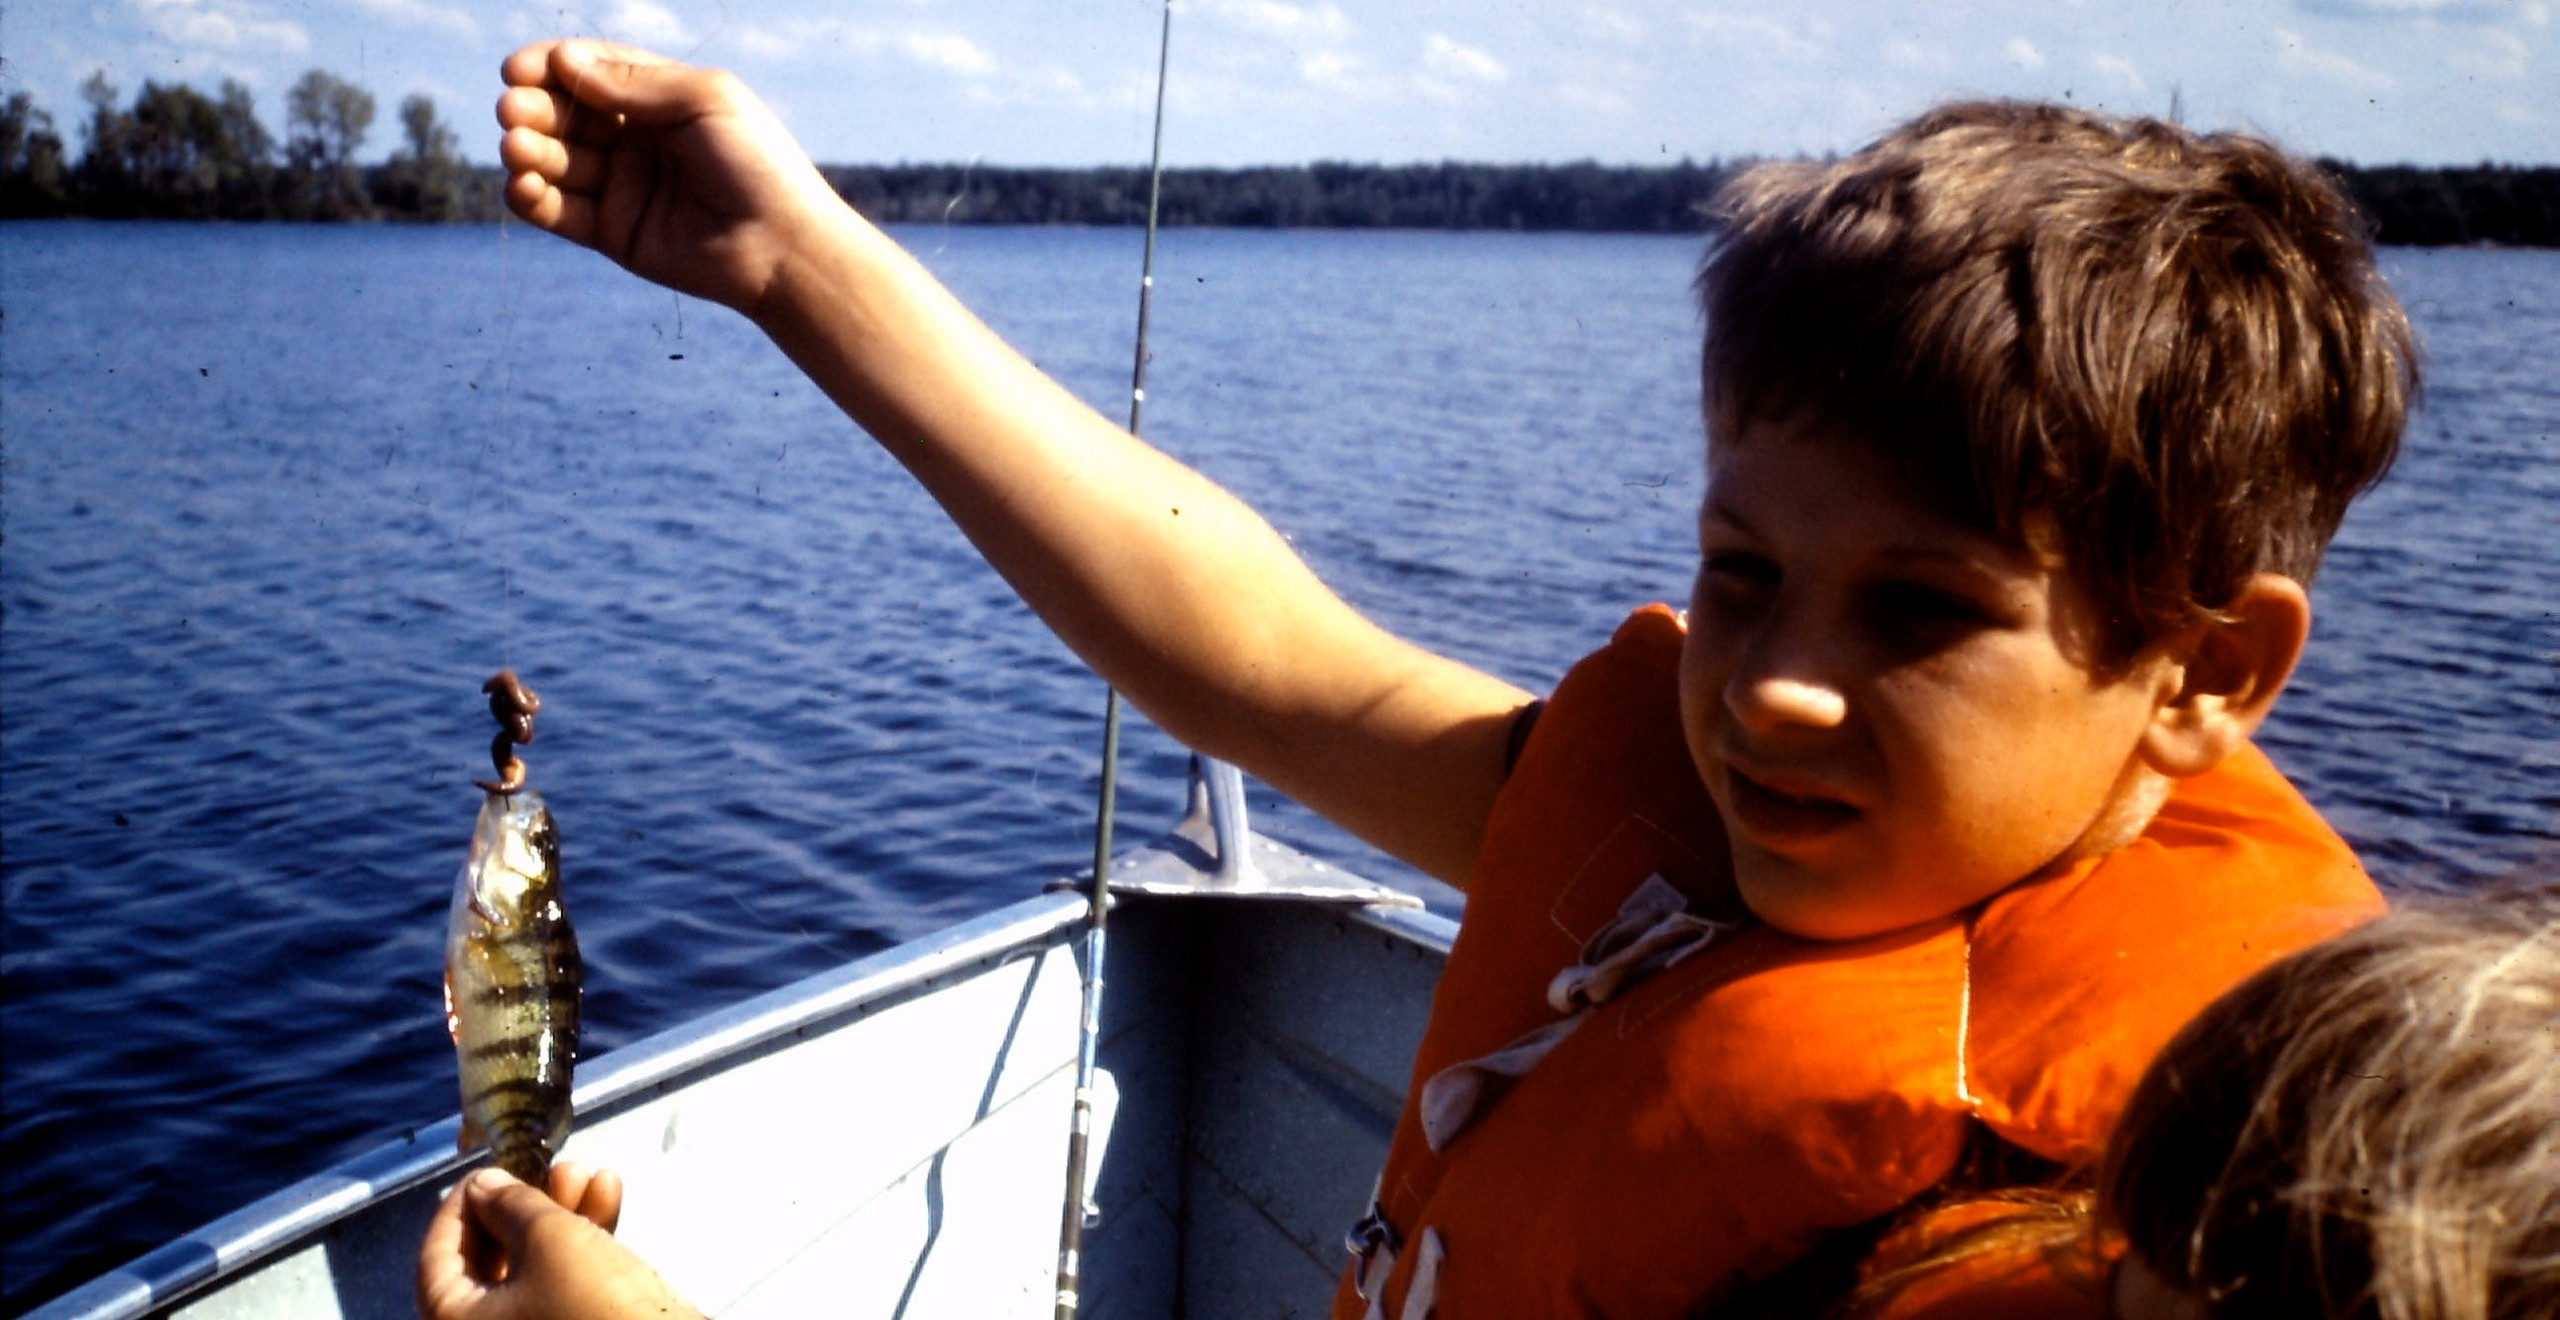 I loved fishing. In spite of my small catch my father captured a future Mark 1:17 fisher of men.